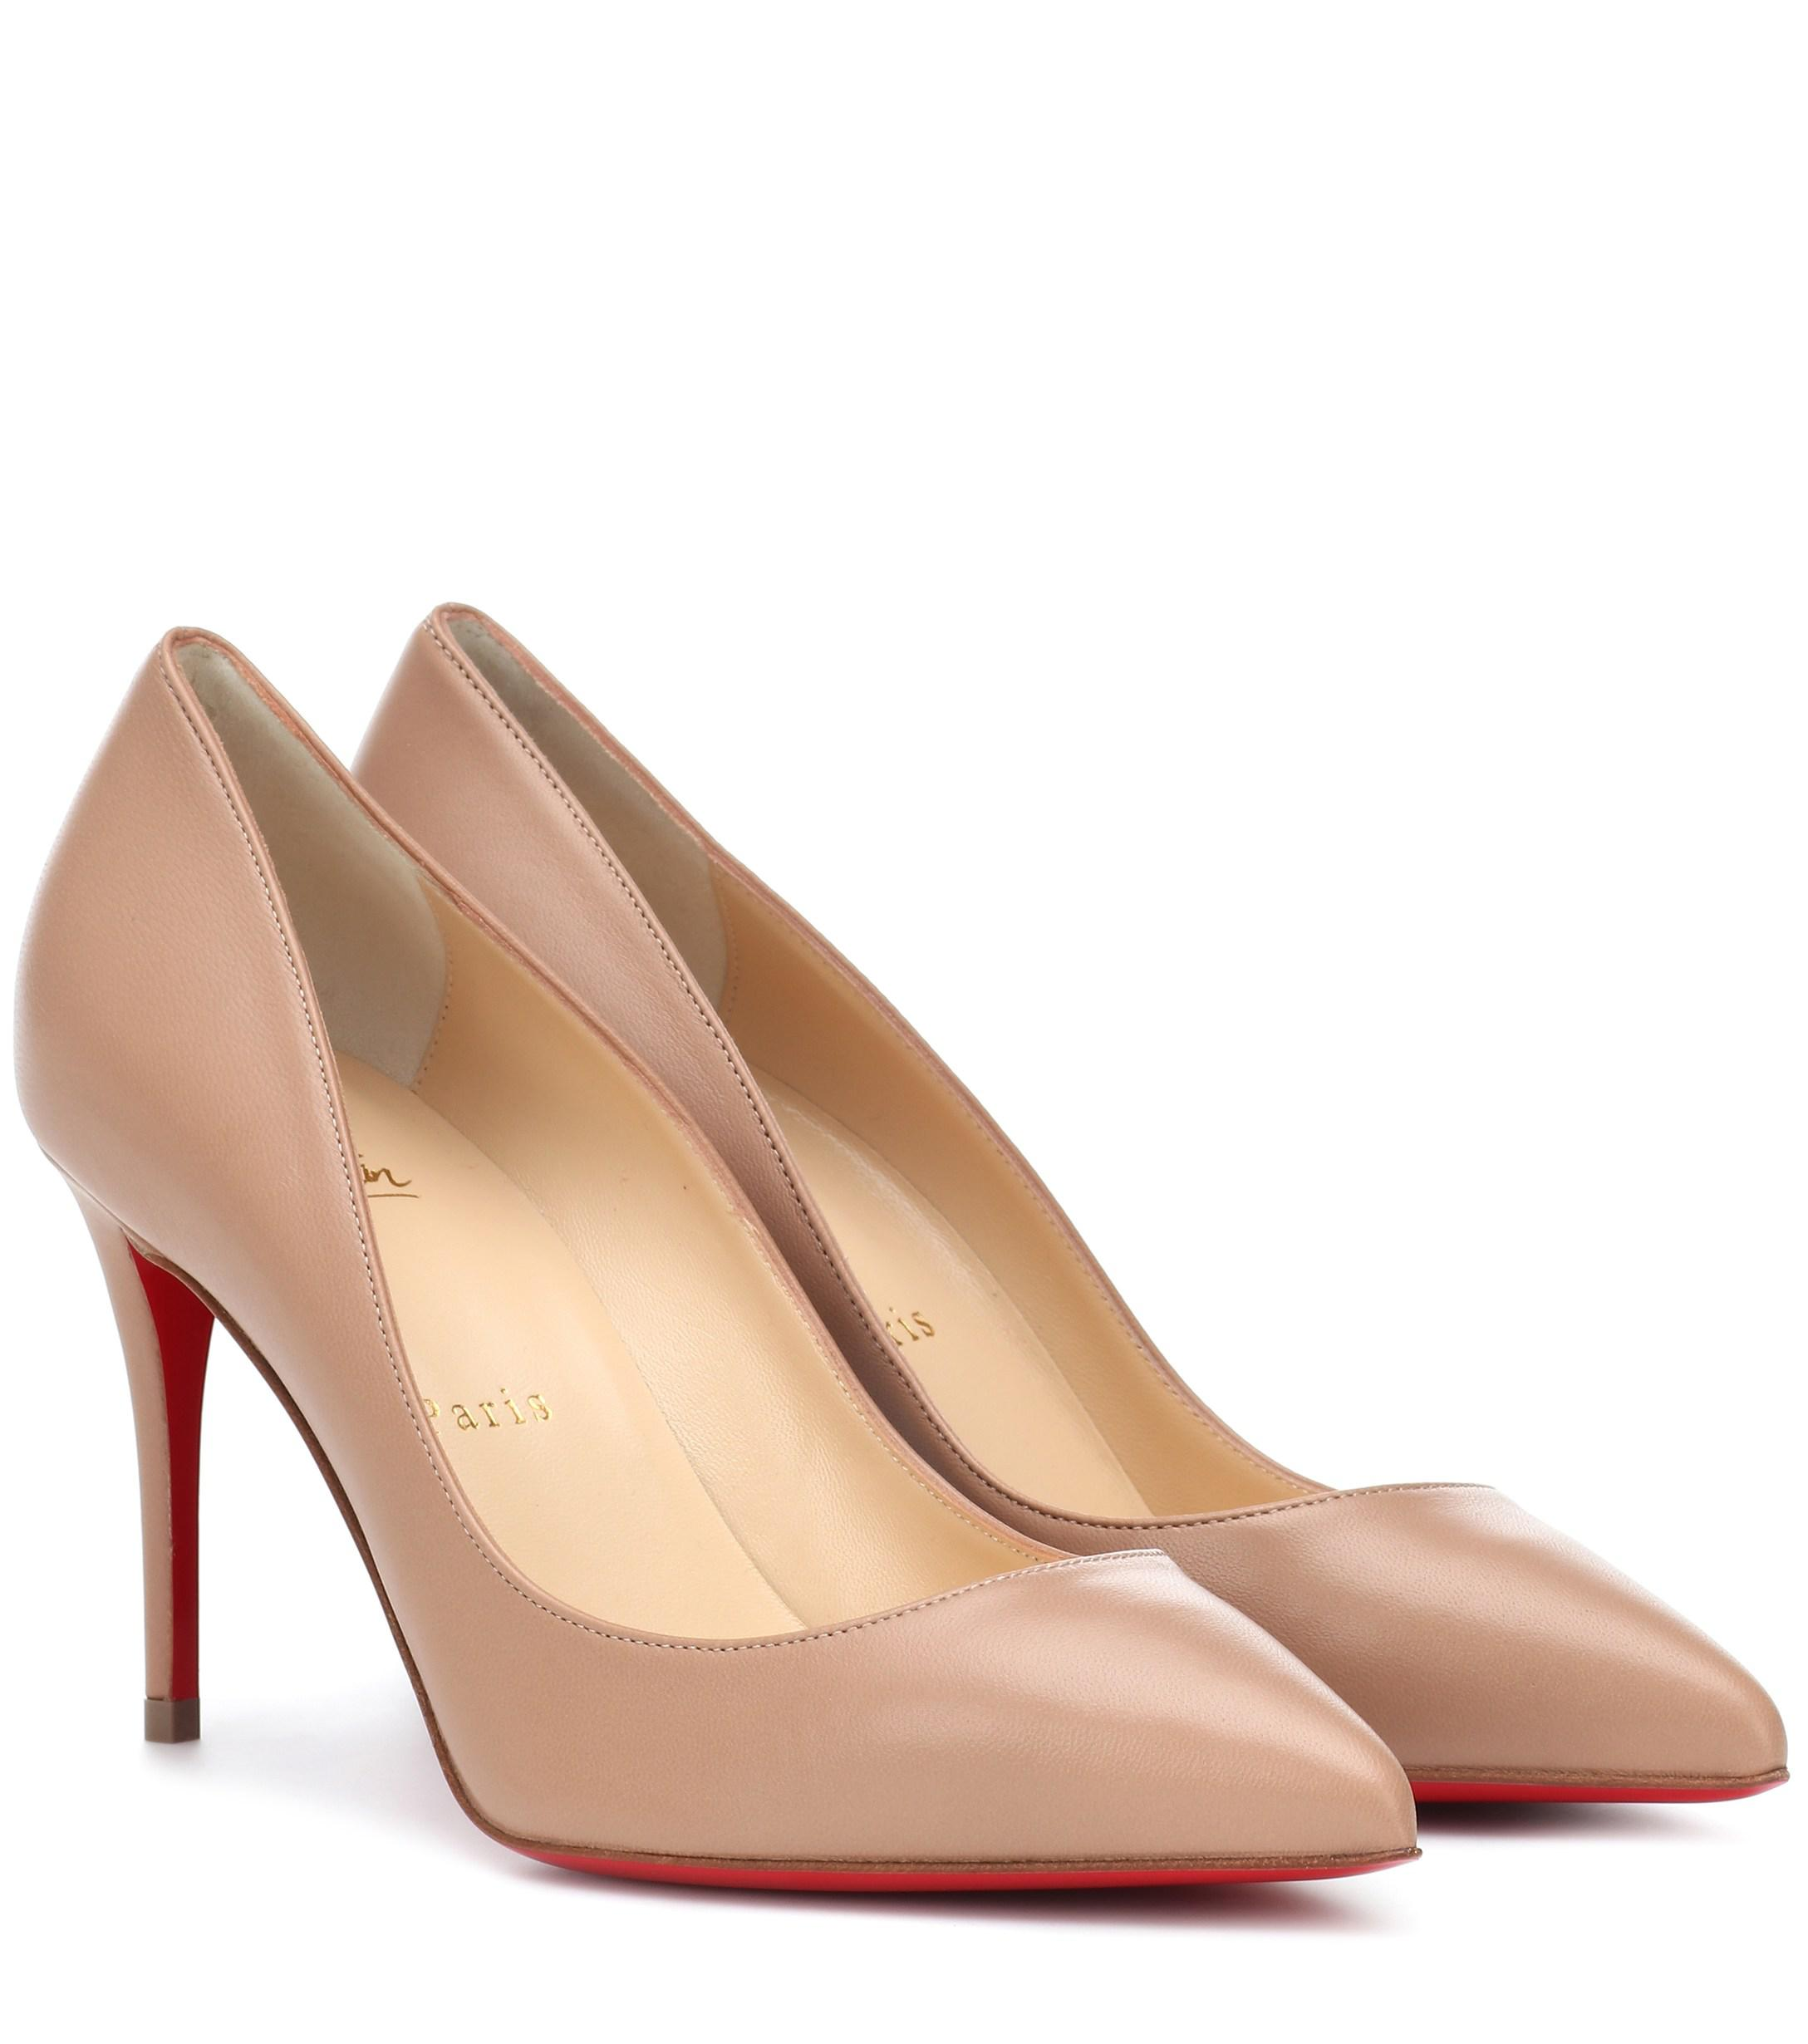 1c9e5dcdc2a Christian Louboutin Pigalle Follies 85 Leather Pumps in Natural - Lyst